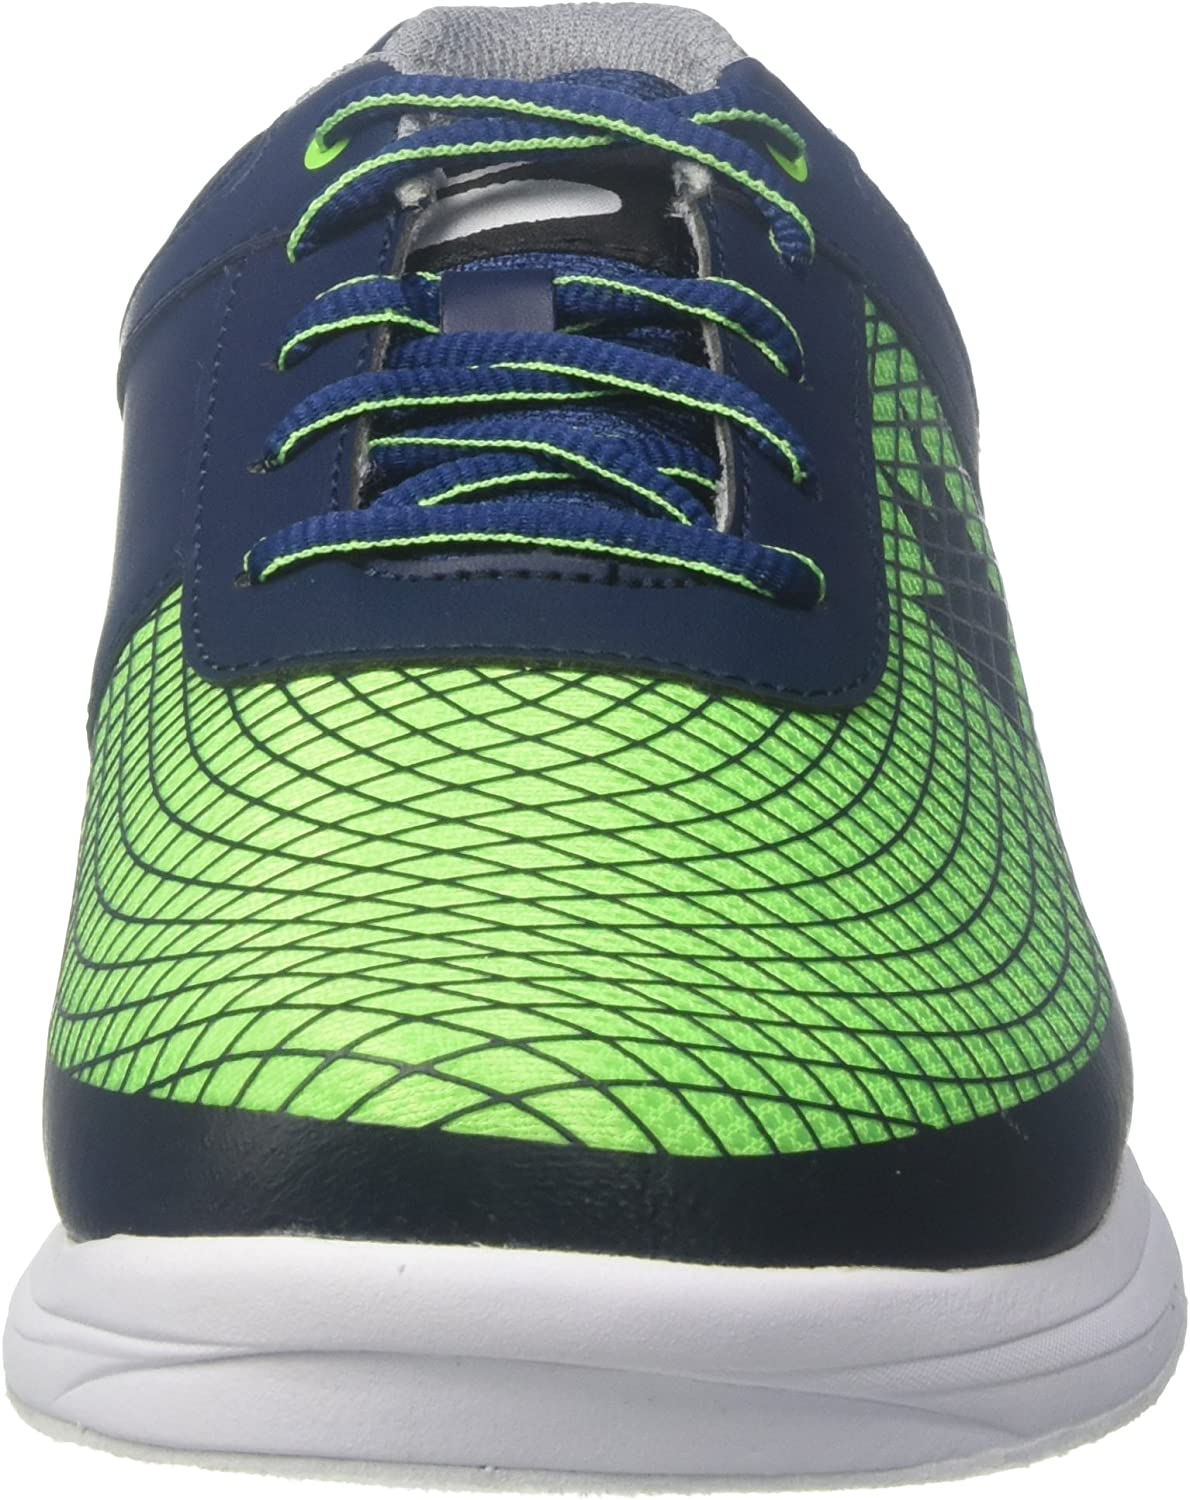 Brunswick Frenzy Mens Bowling Shoe Navy//Green 10.0